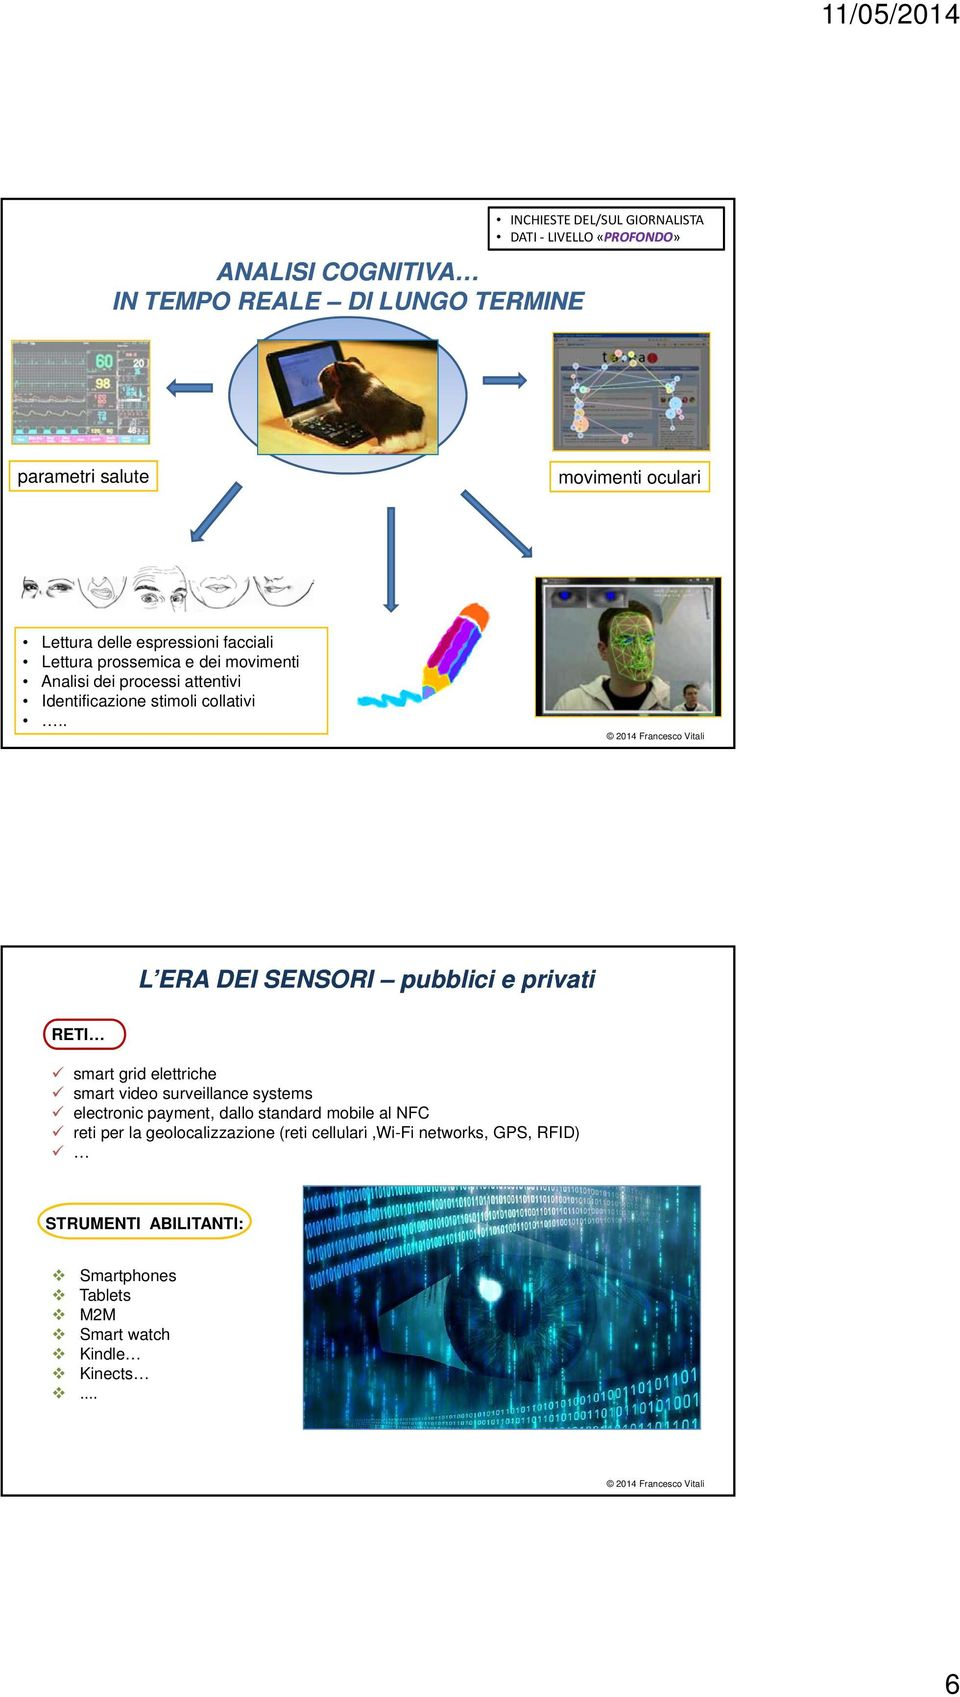 . L ERA DEI SENSORI pubblici e privati RETI smart grid elettriche smart video surveillance systems electronic payment, dallo standard mobile al